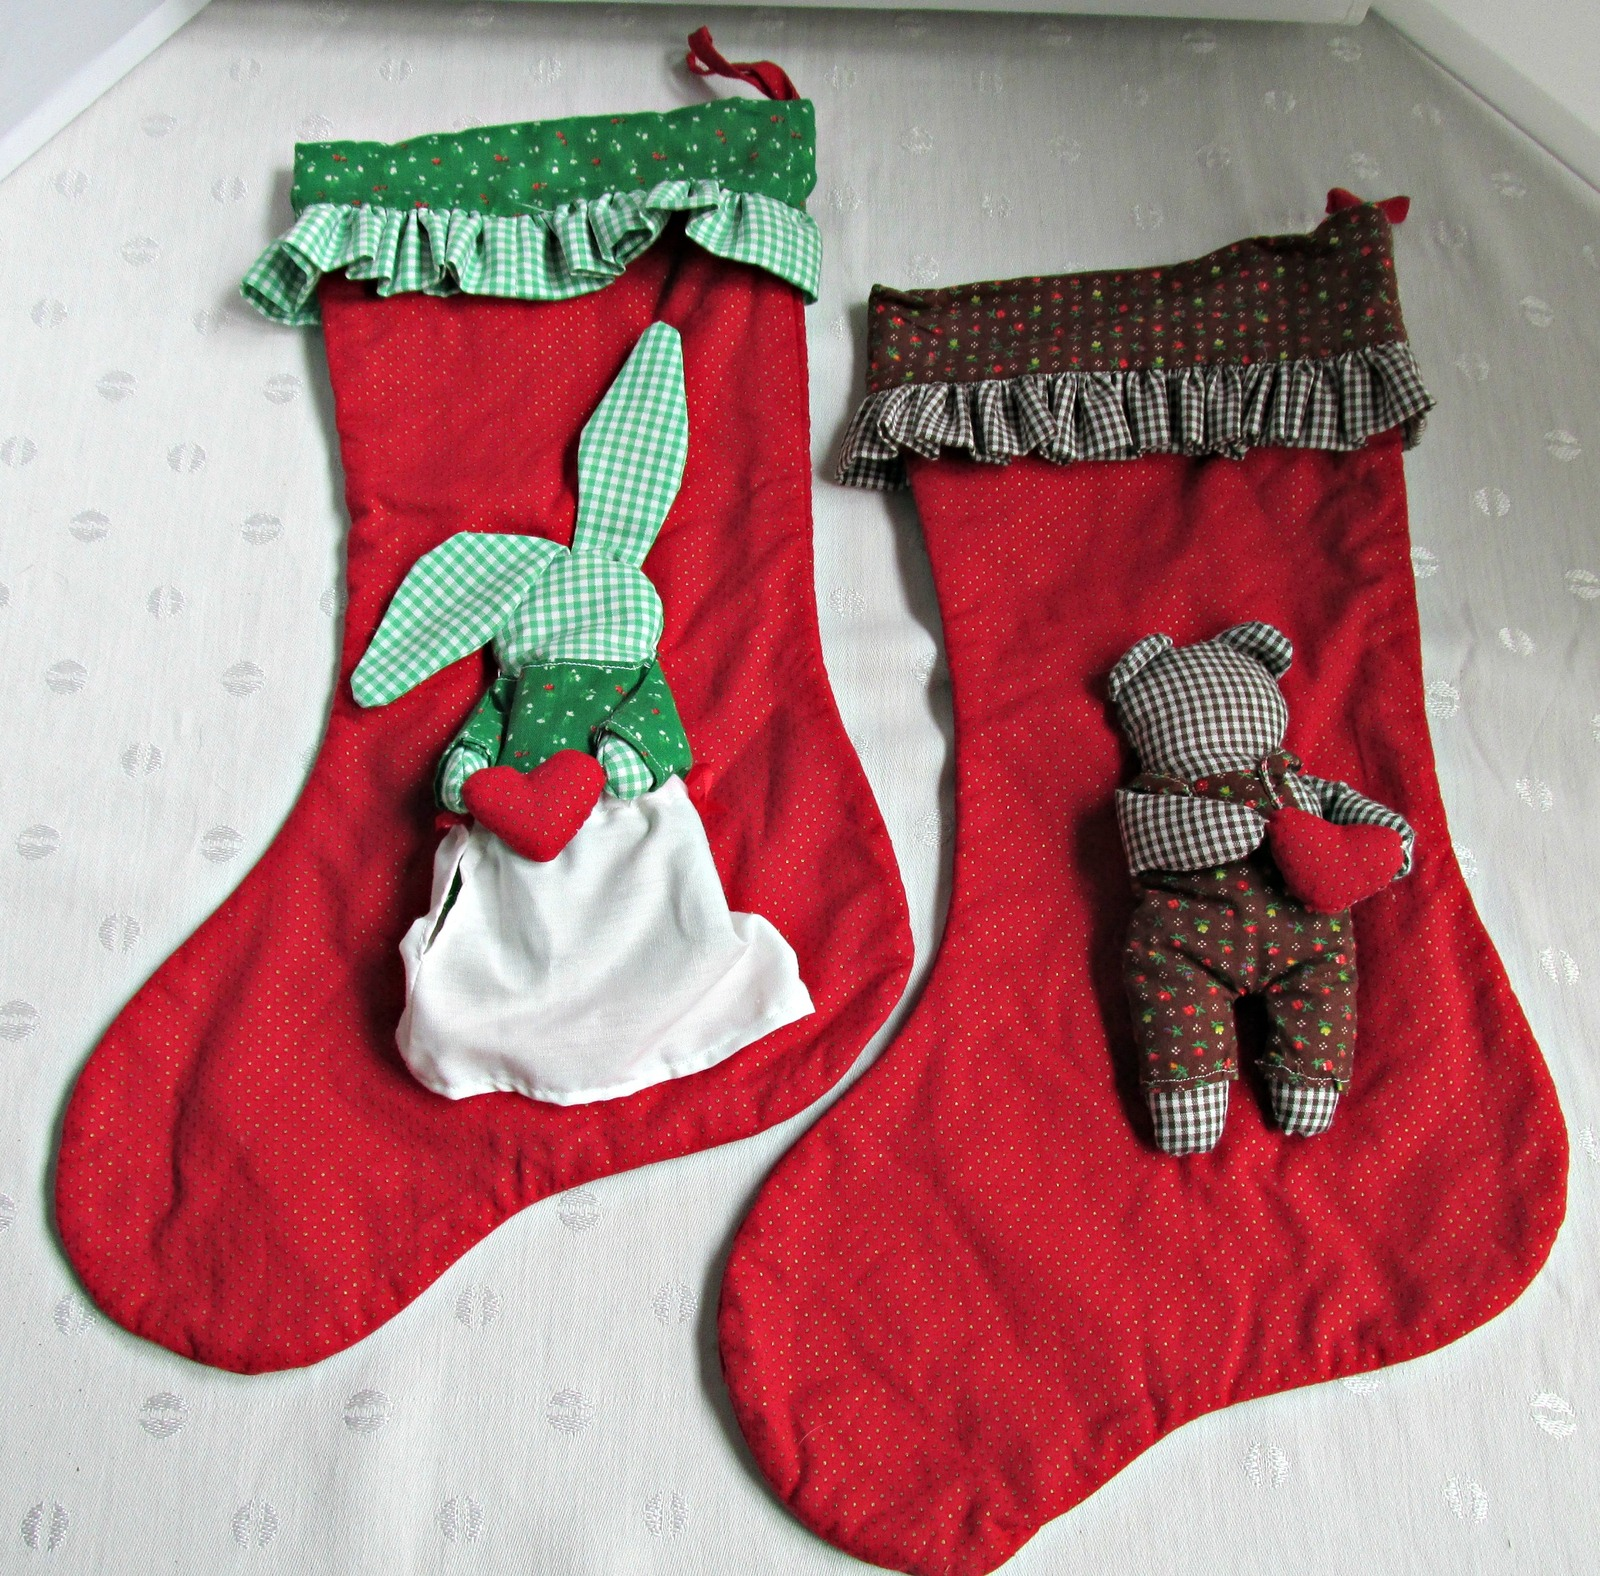 xmasstockings10 xmasstockings10 cotton christmas stockings pair boy girl rabbits red green handmade vintage - Red And Green Christmas Stockings